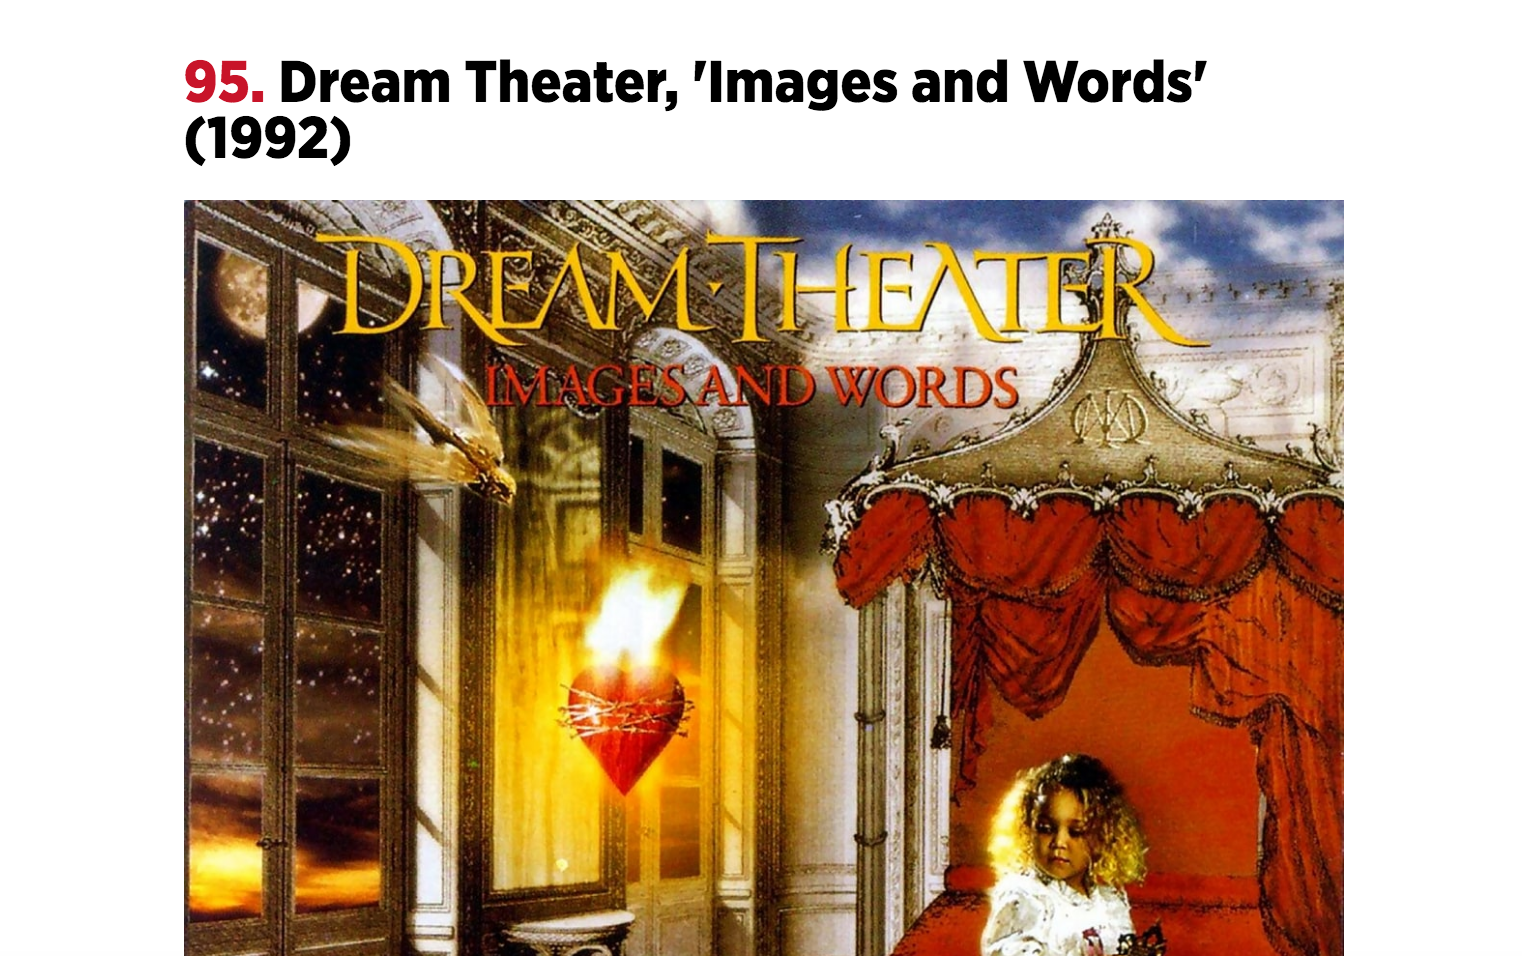 Dream Theater, Opeth, and Queensryche rank in Rolling Stone's Top 100 Metal Albums List